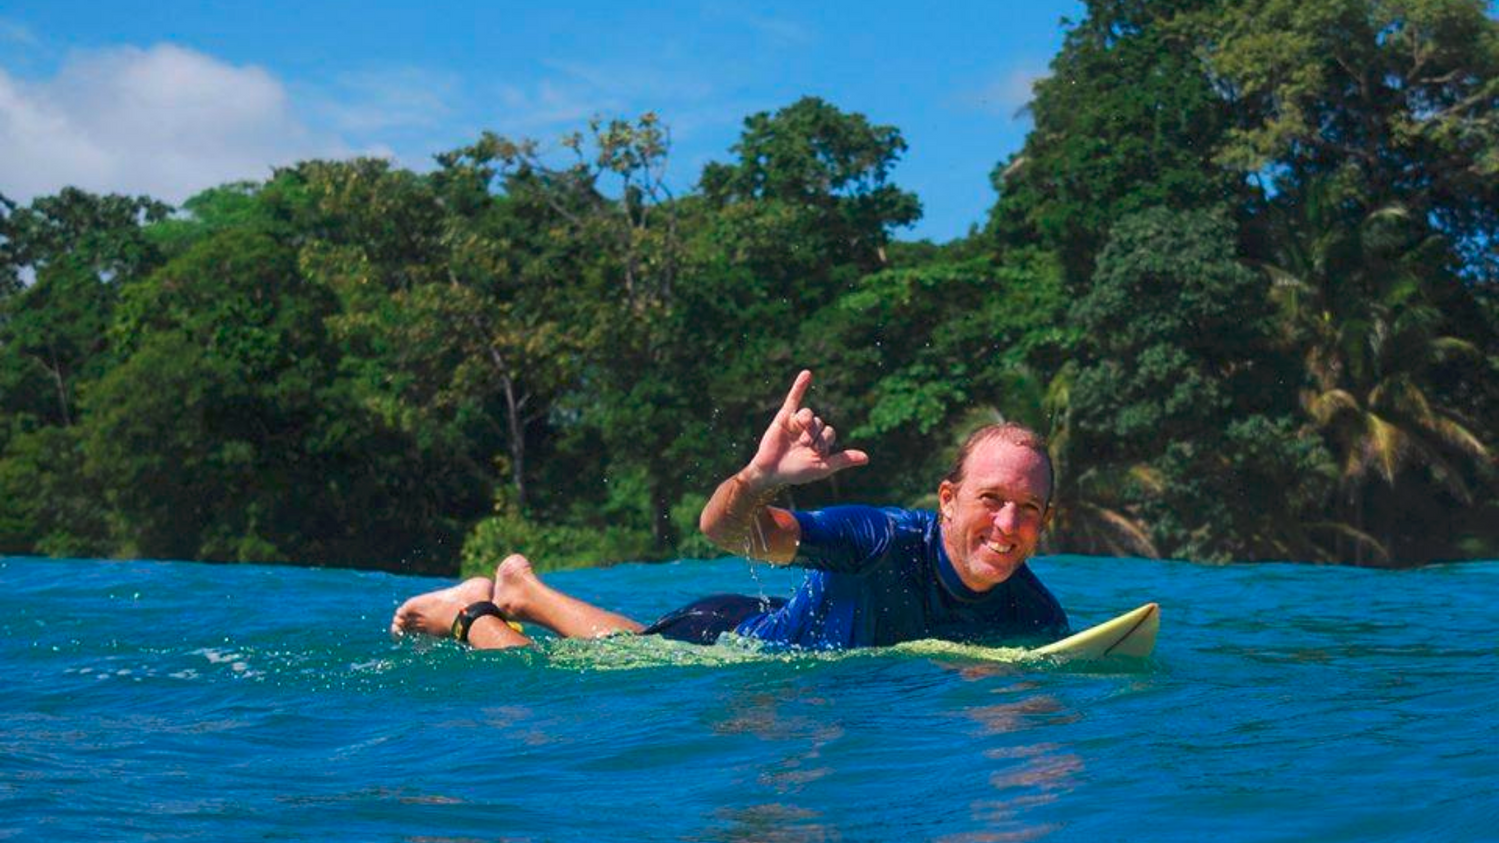 Andy Crawford on a surfn board in the Caribbean Sea giving the shaka sign with his right hand and smiling